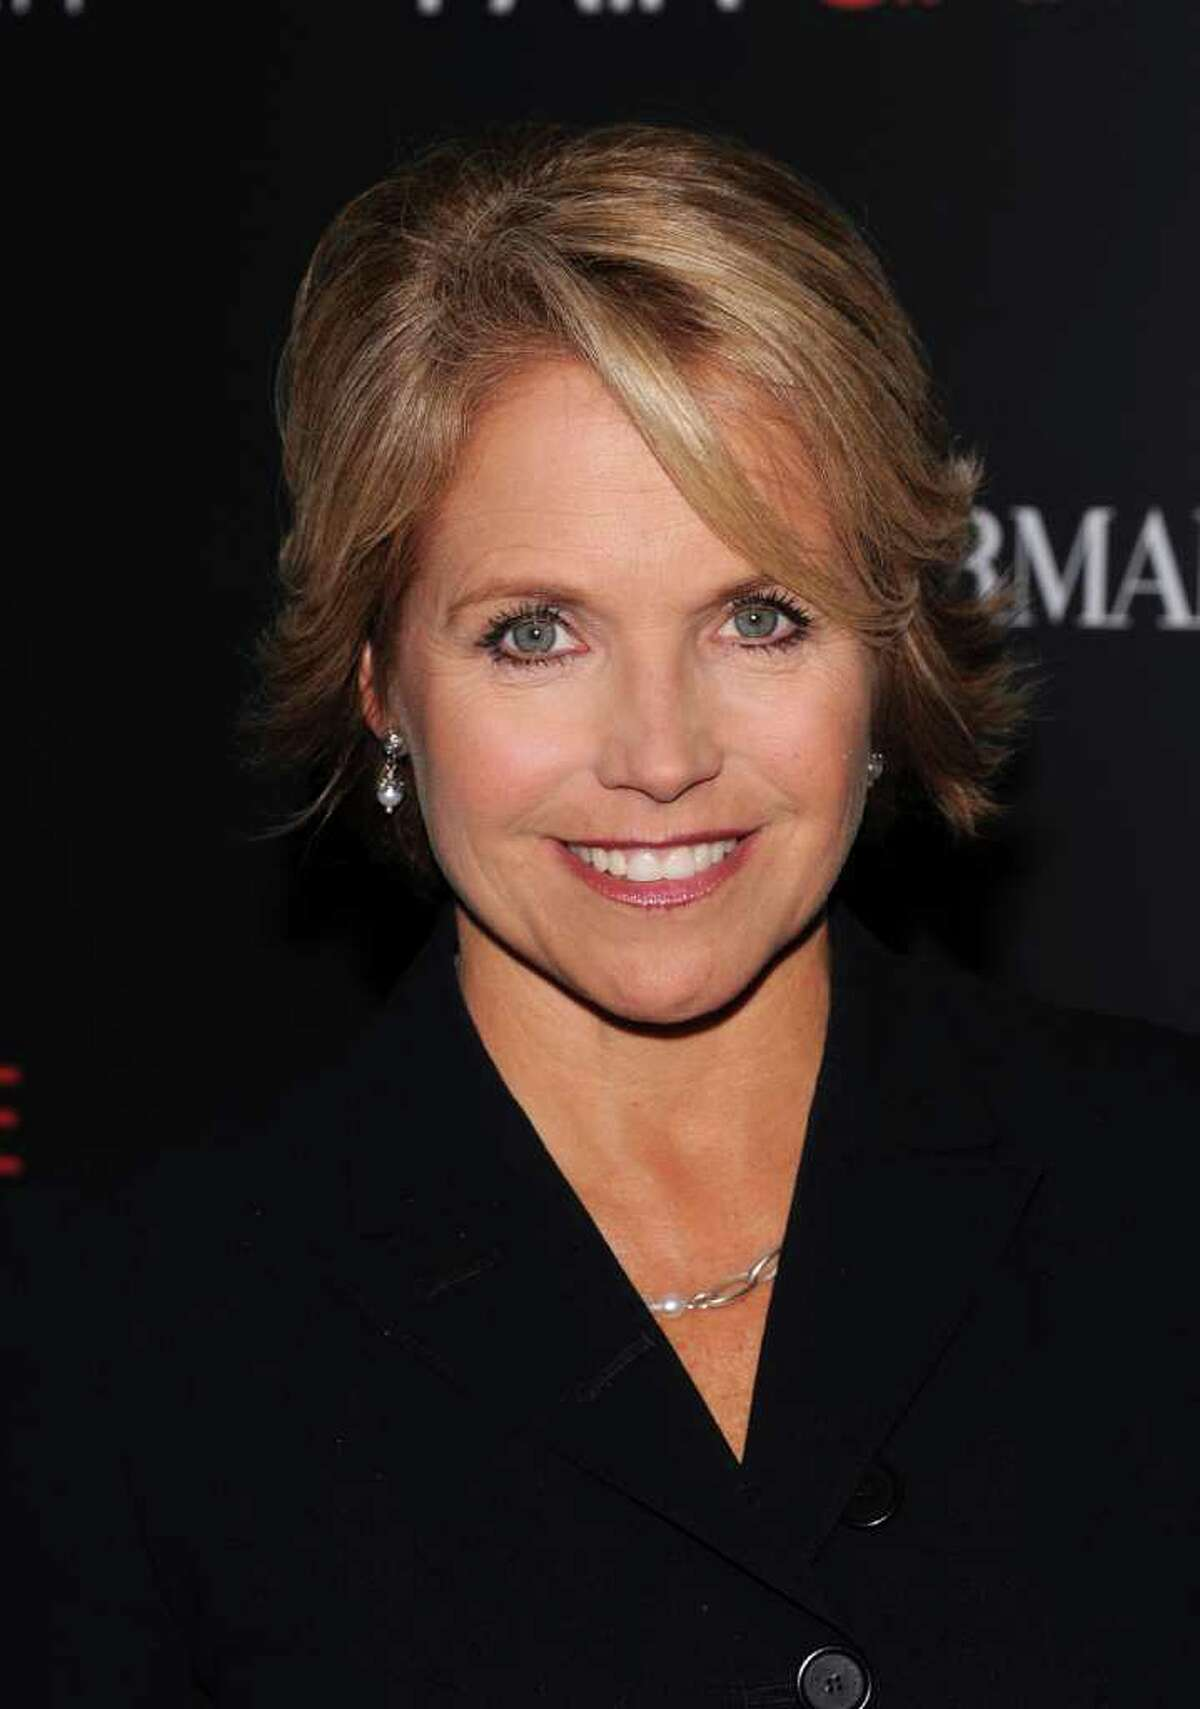 FILE - In this Oct. 6, 2010 file photo, Katie Couric attends a Cinema Society screening of